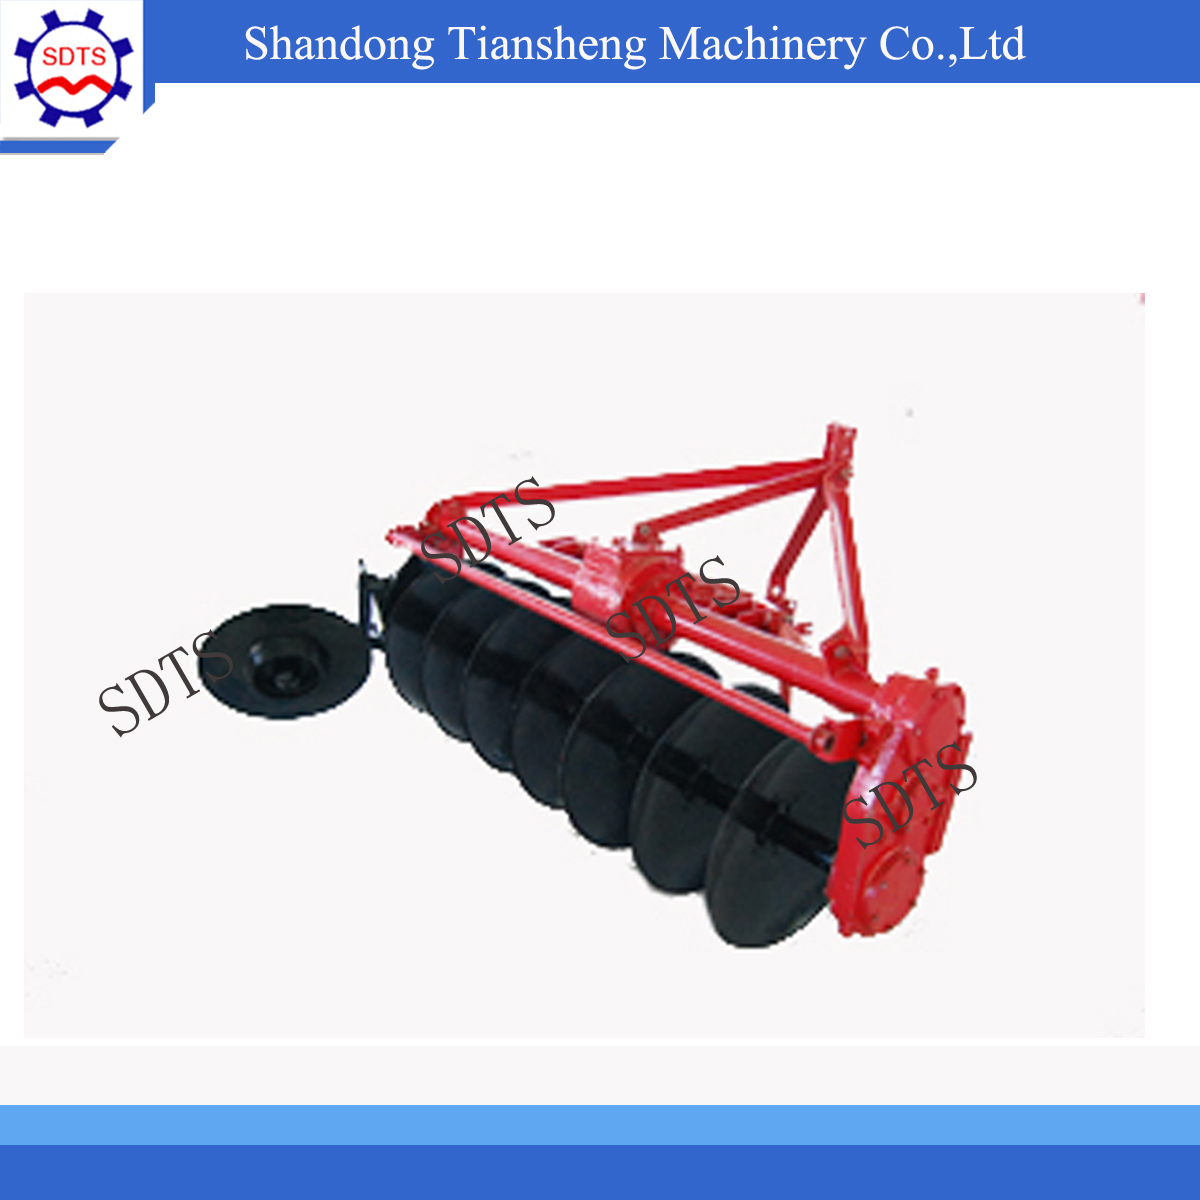 1LYQ-722 Farming rotary-driven Driven disc plow /plough made in China